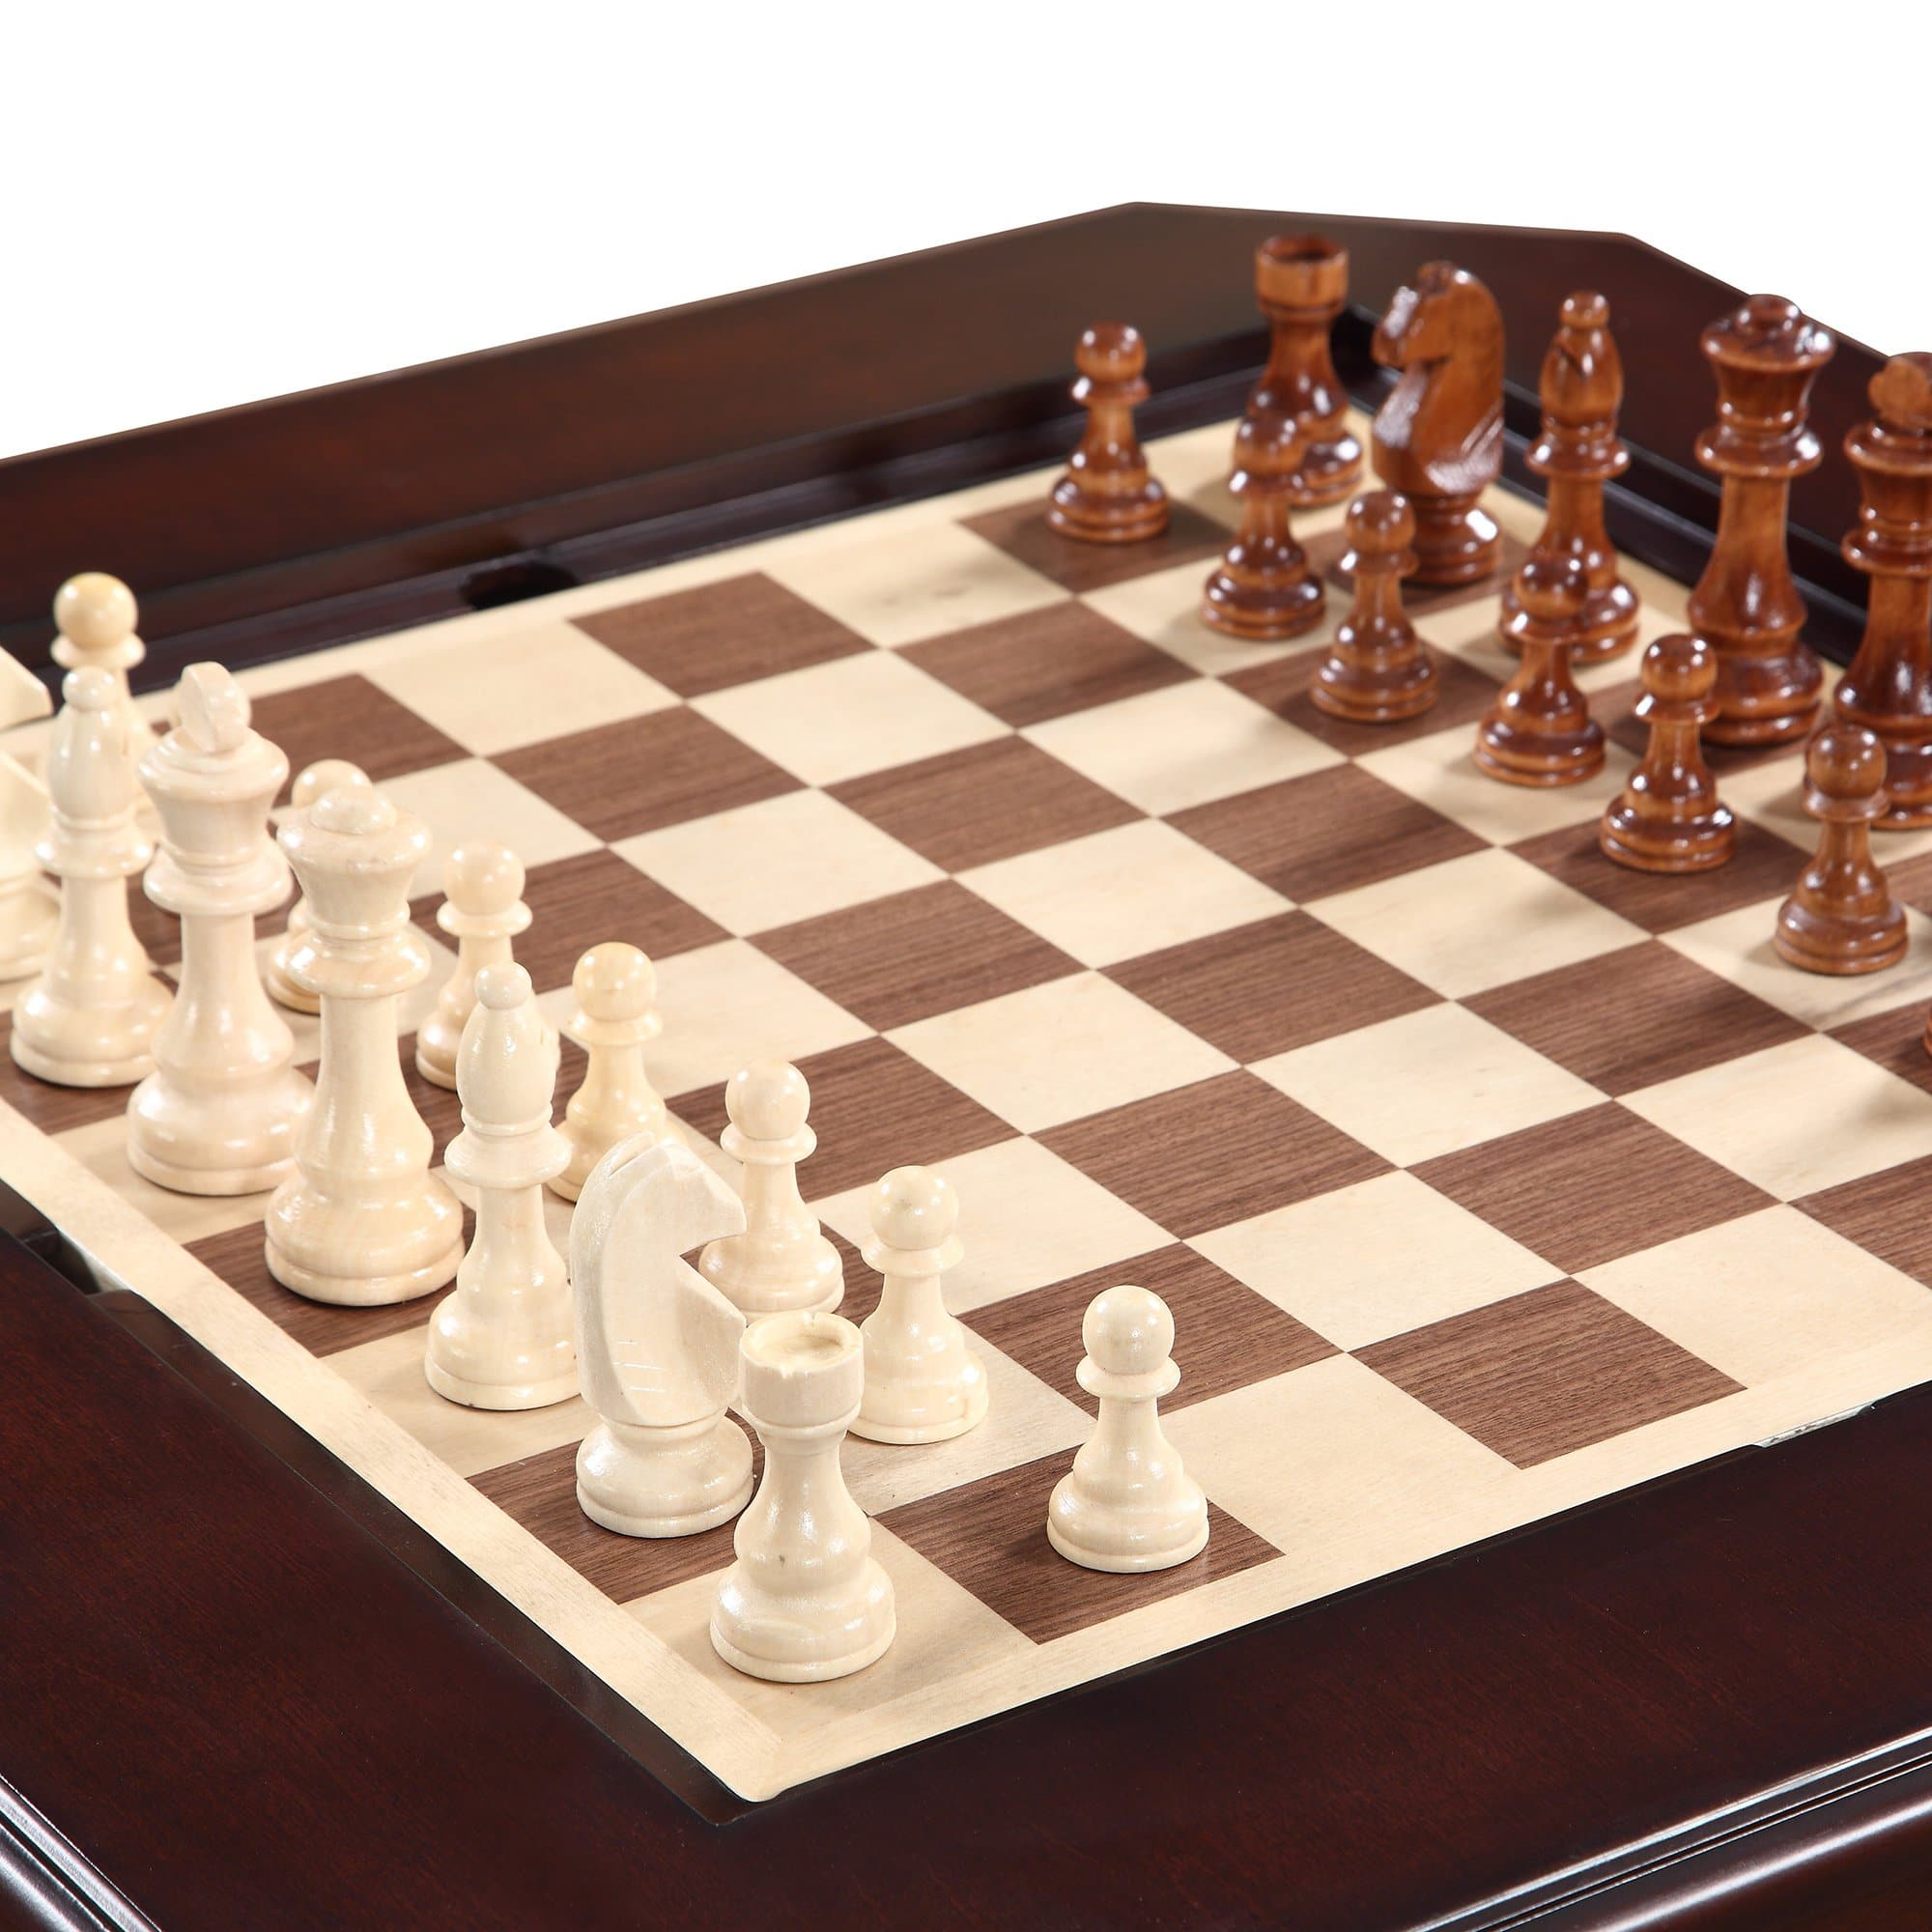 Fortress Chess Checkers Amp Backgammon Pedestal Game Table